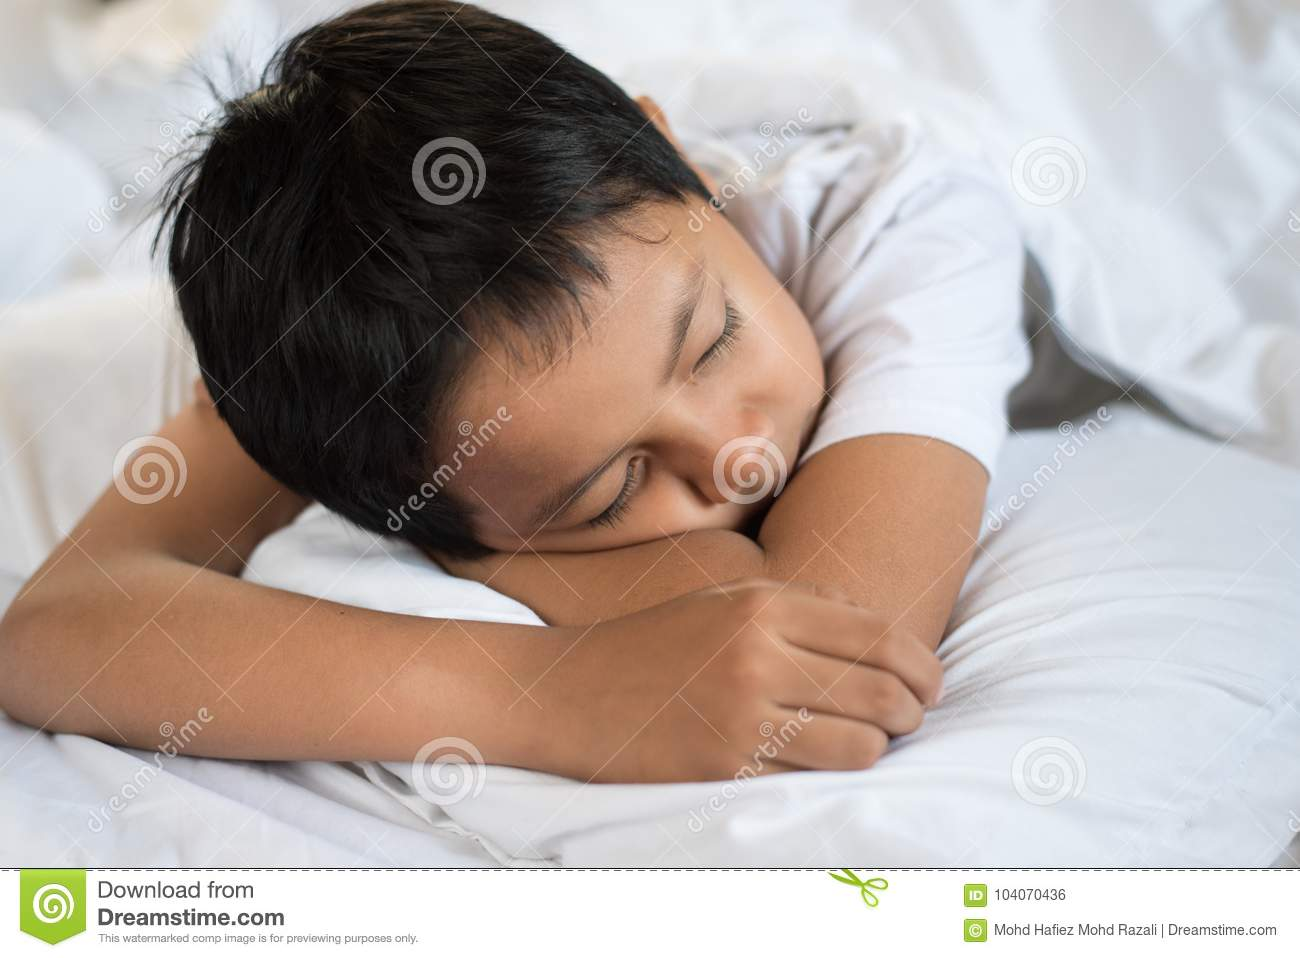 de097ab0d Boy sleeping on bed with white sheet and pillow.asian kid fall asleep  daydreaming.sleep concept